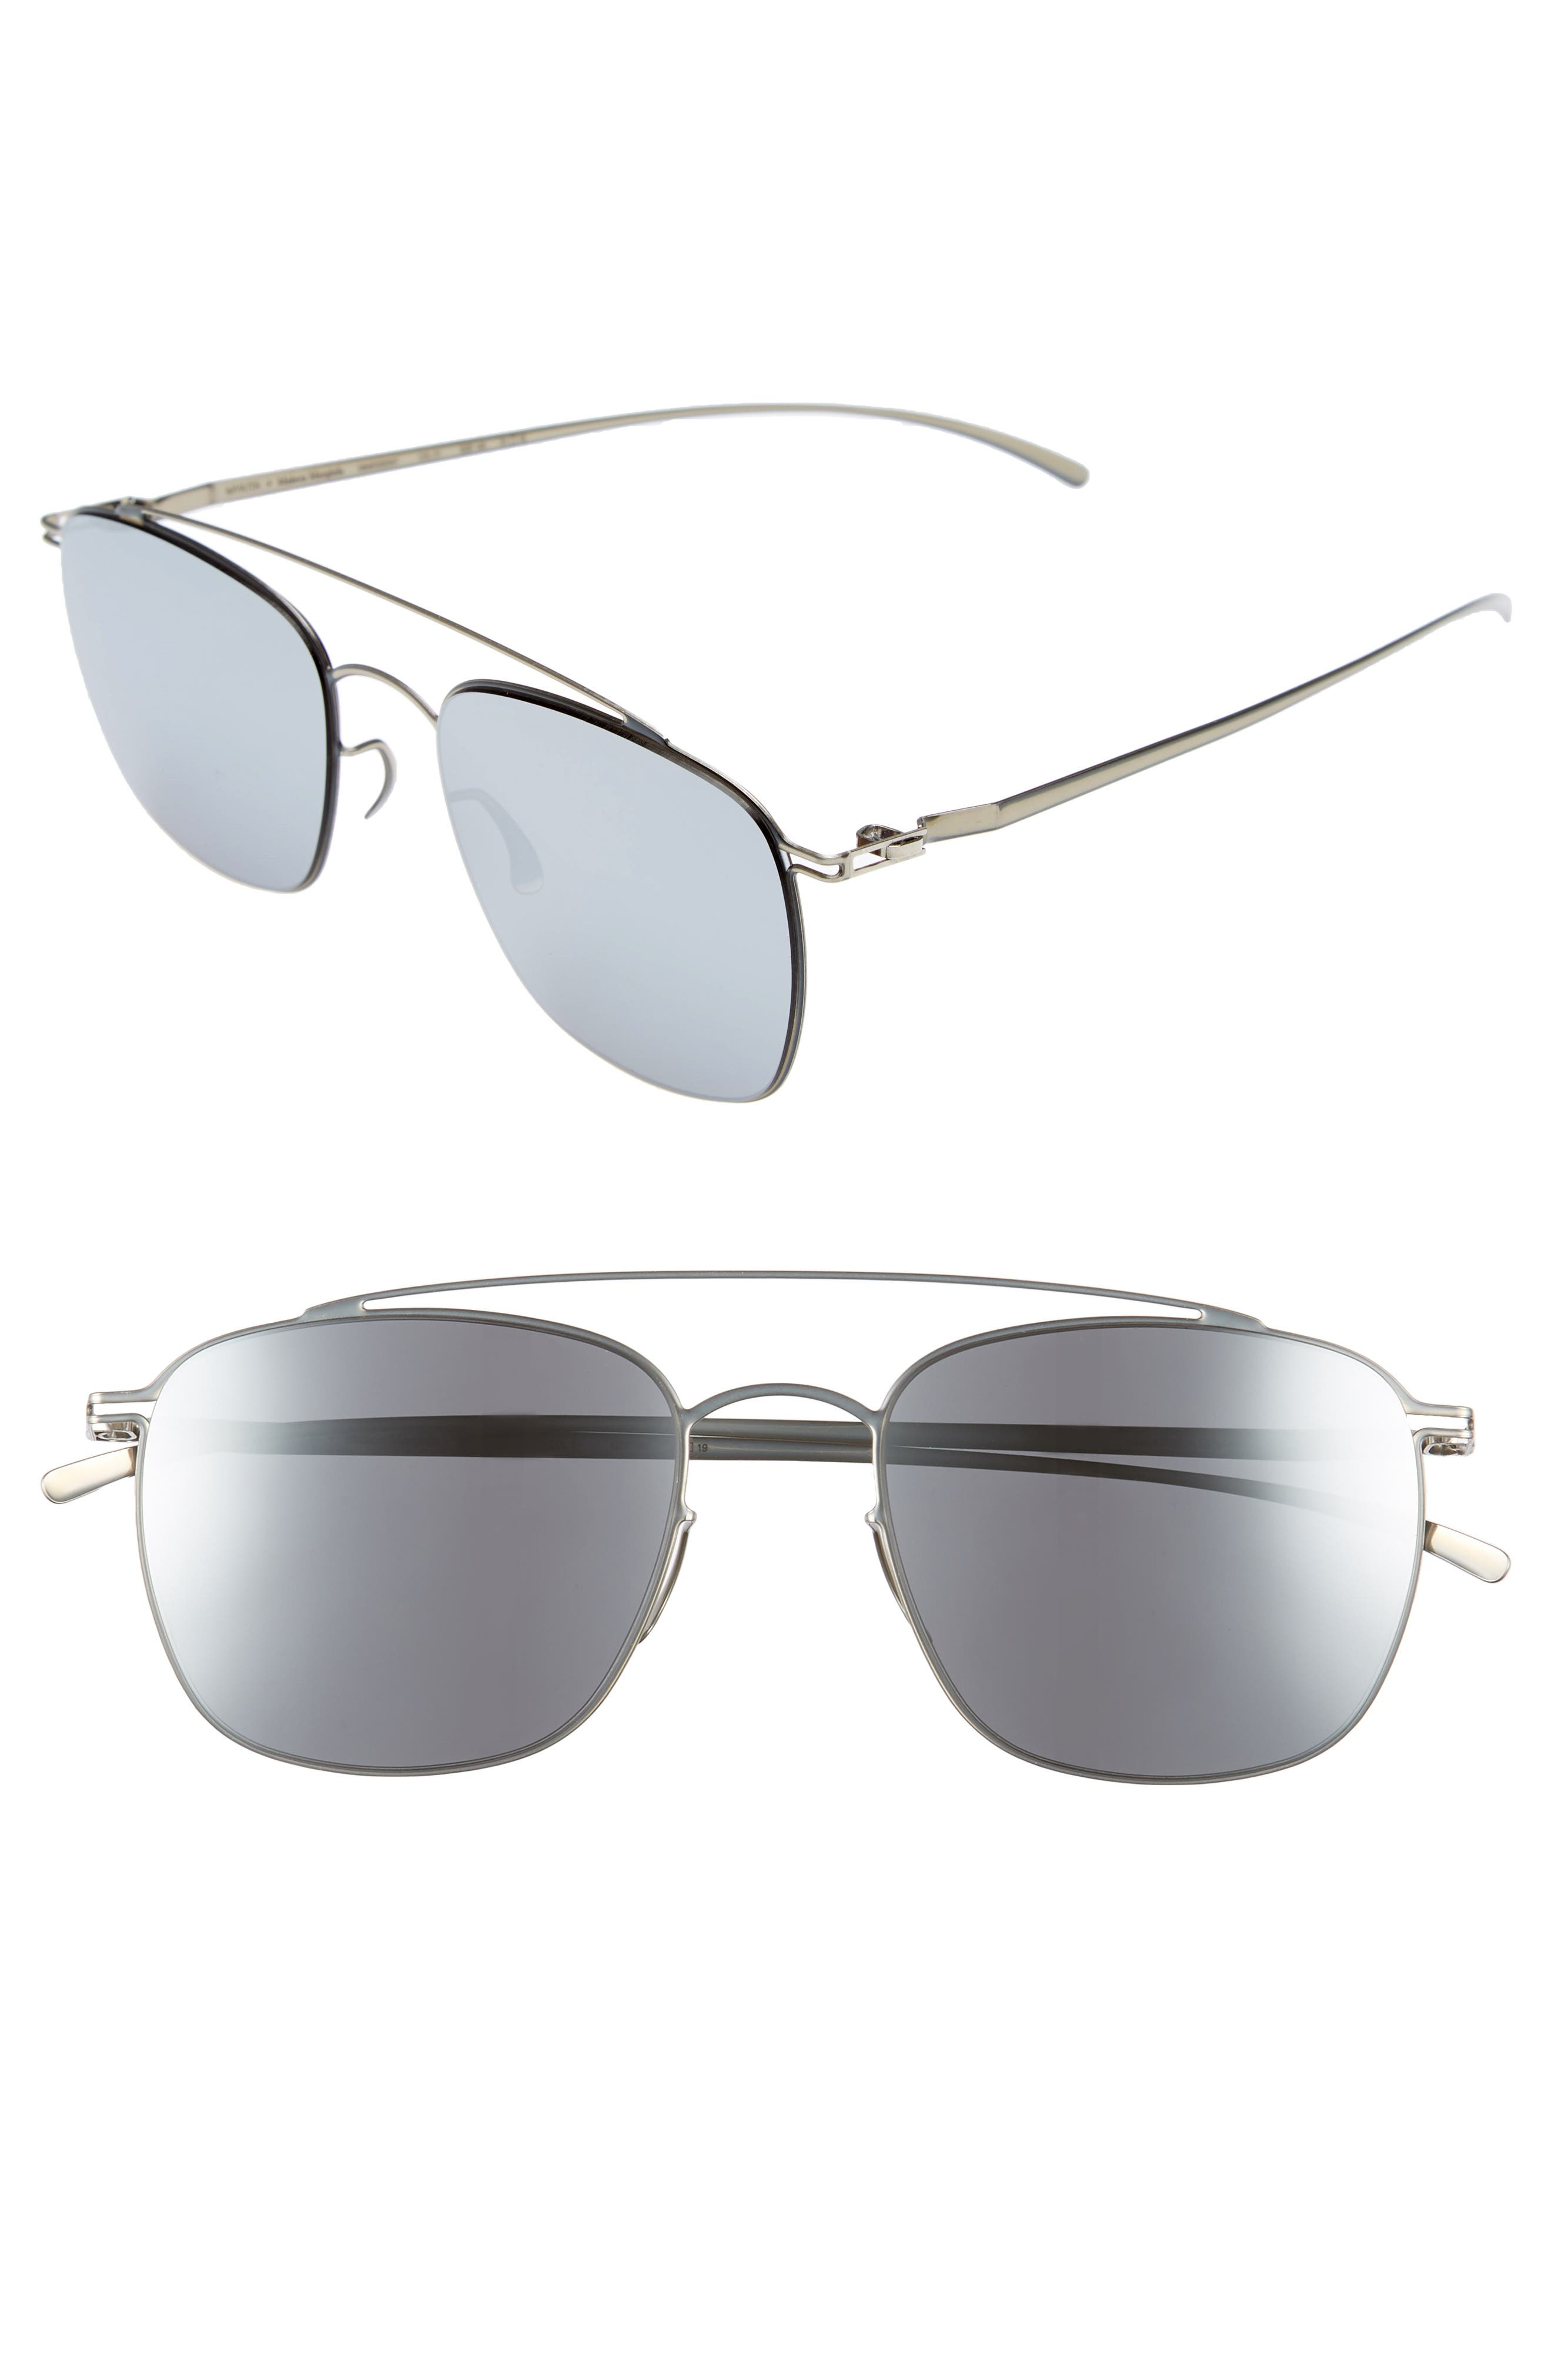 MMESSE007 51mm Aviator Sunglasses,                         Main,                         color, Silver